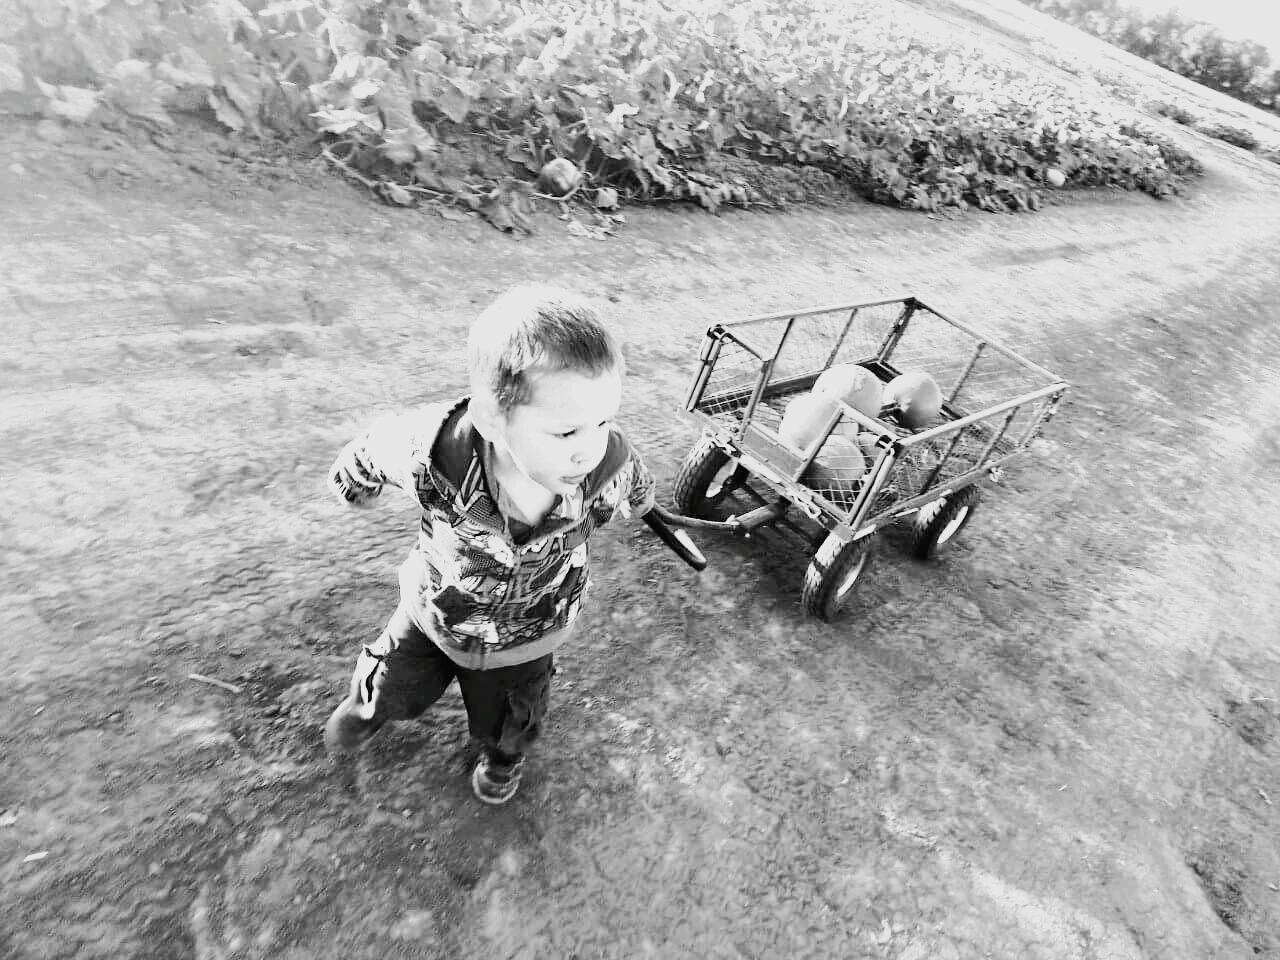 Almost there....Blackandwhite Pumpkinpatch Halloween Boys Will Be Boys Chilly Day Wagon  Focus Son EyeEm Best Shots - Black + White Black&white Salina, Ks Monochrome Photography